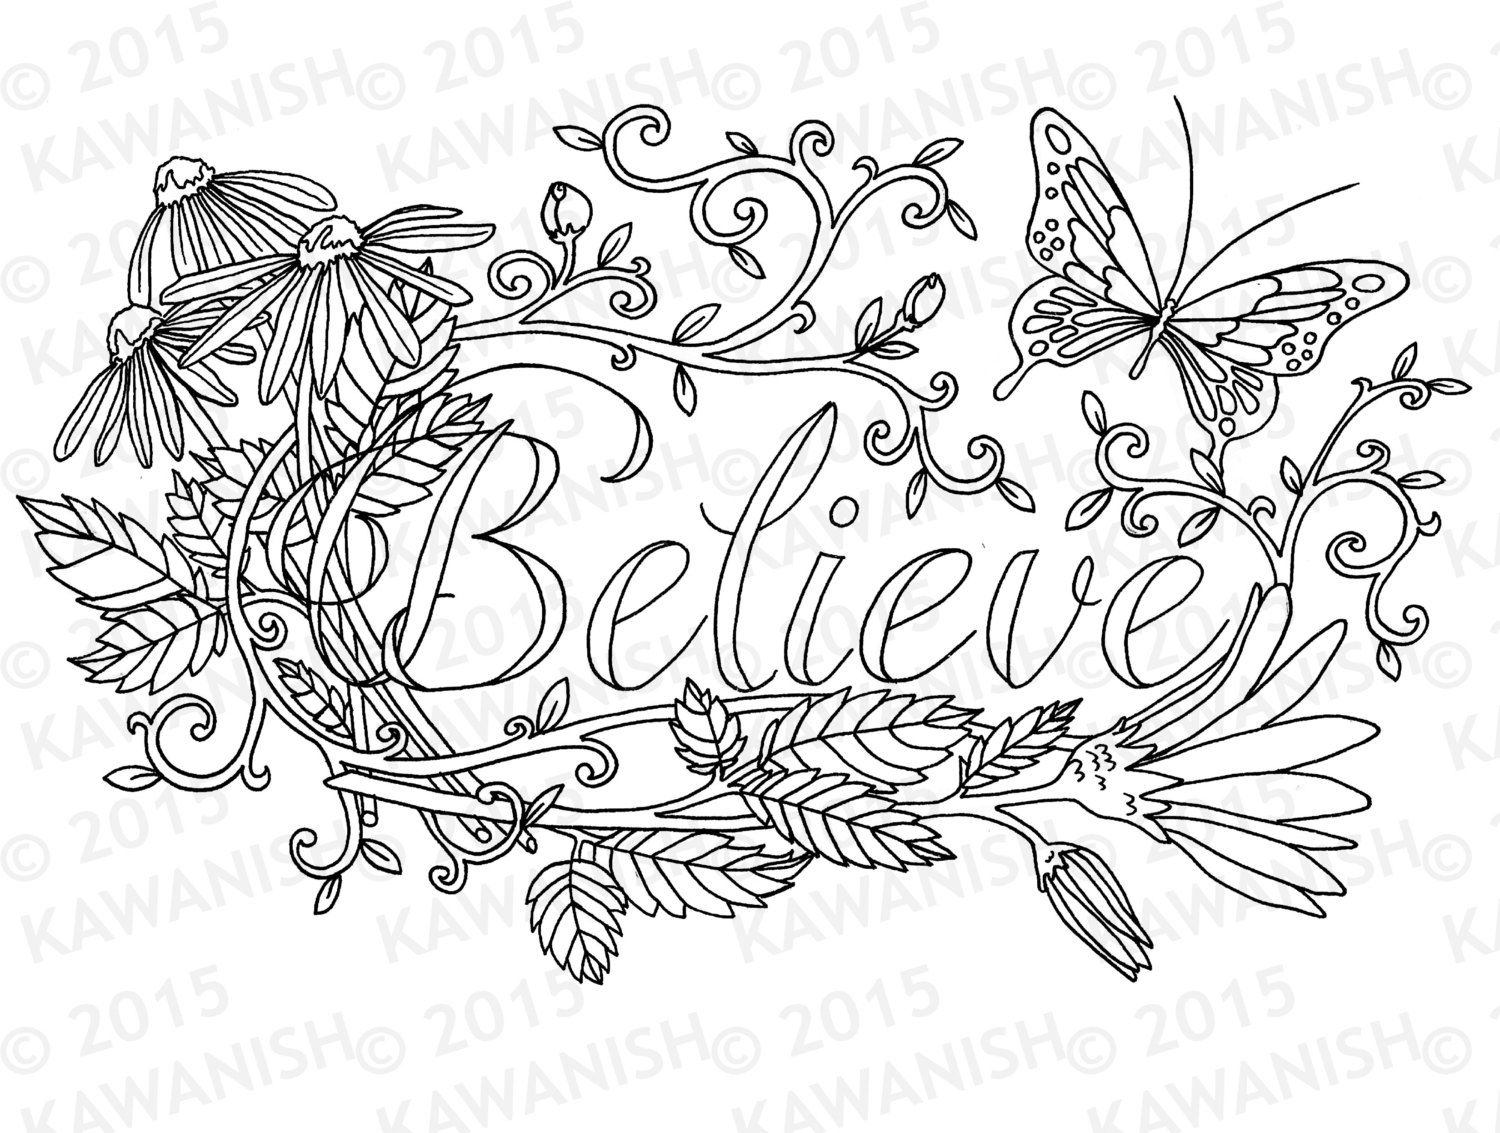 Printable coloring pages for adults flowers - Believe Flower Inspirational Adult Coloring Page Gift By Kawanish